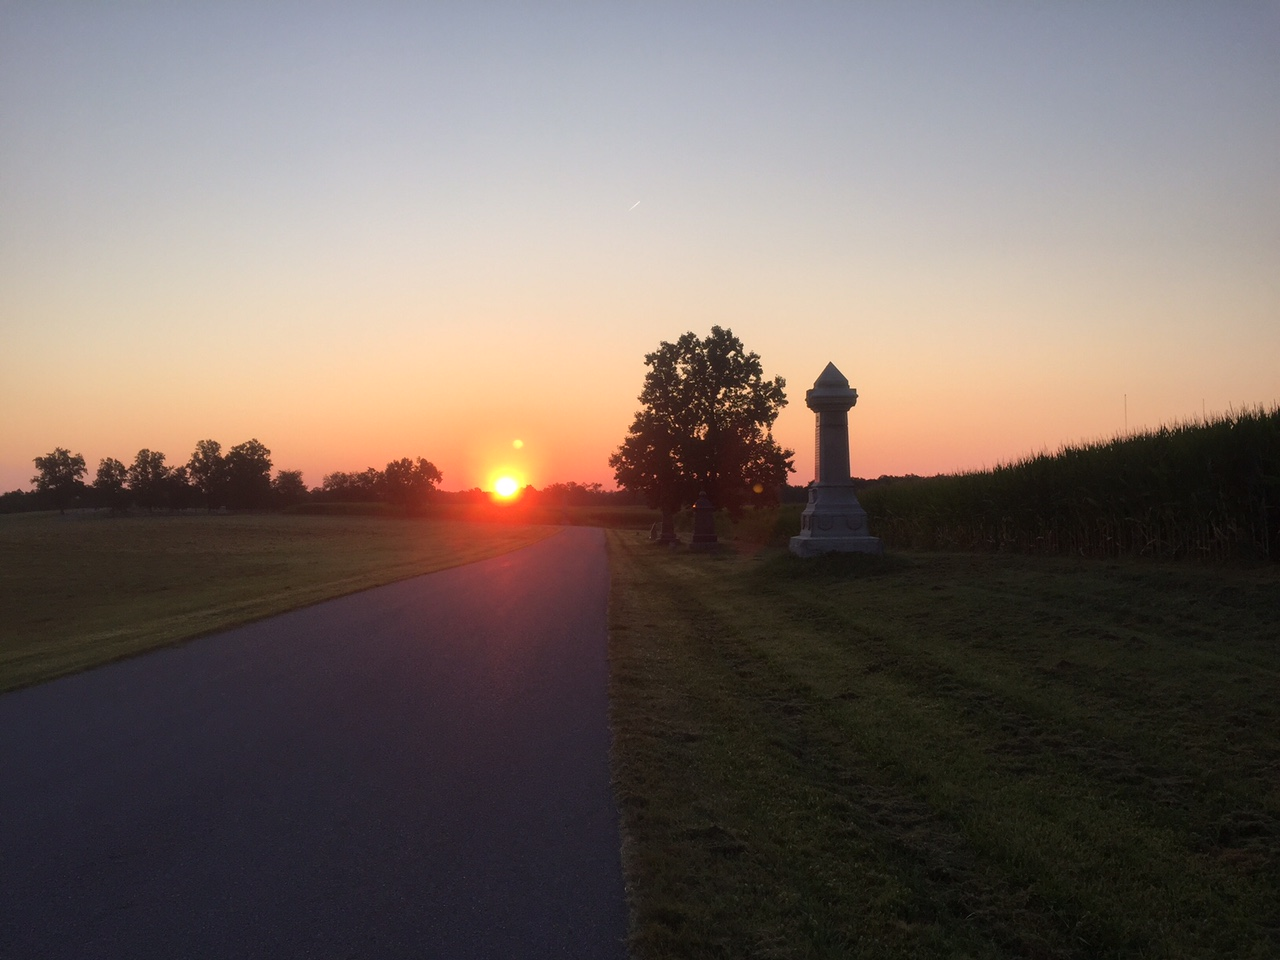 Early morning run on the Gettysburg battlefield